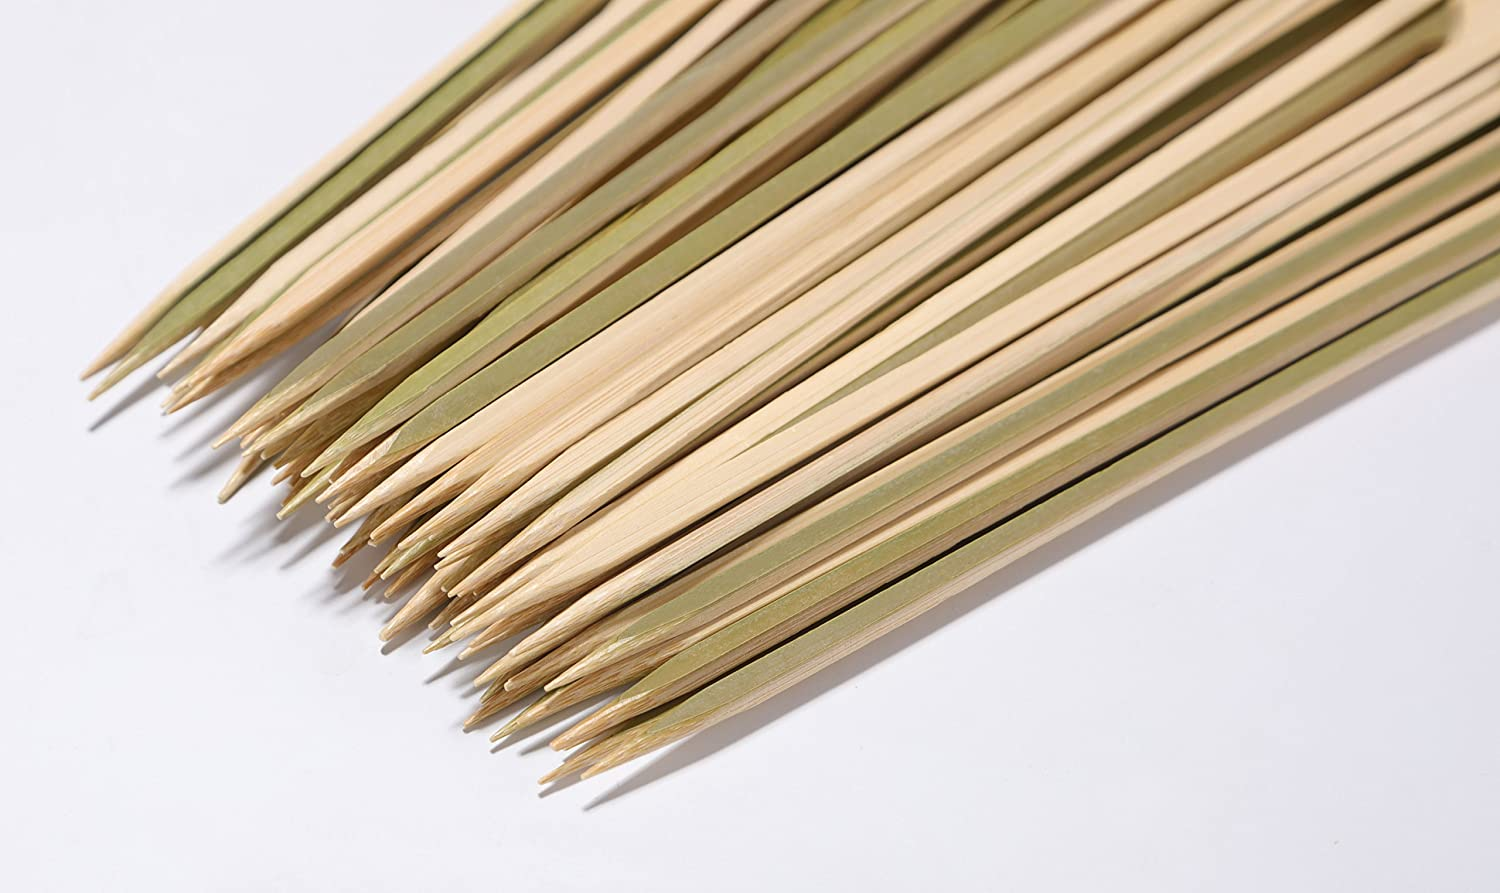 Yiapinn 21cm Natural Bamboo Skewers 100 Pcs BBQ Skewers for Grill Party Sandwich Cocktail Paddle Sticks